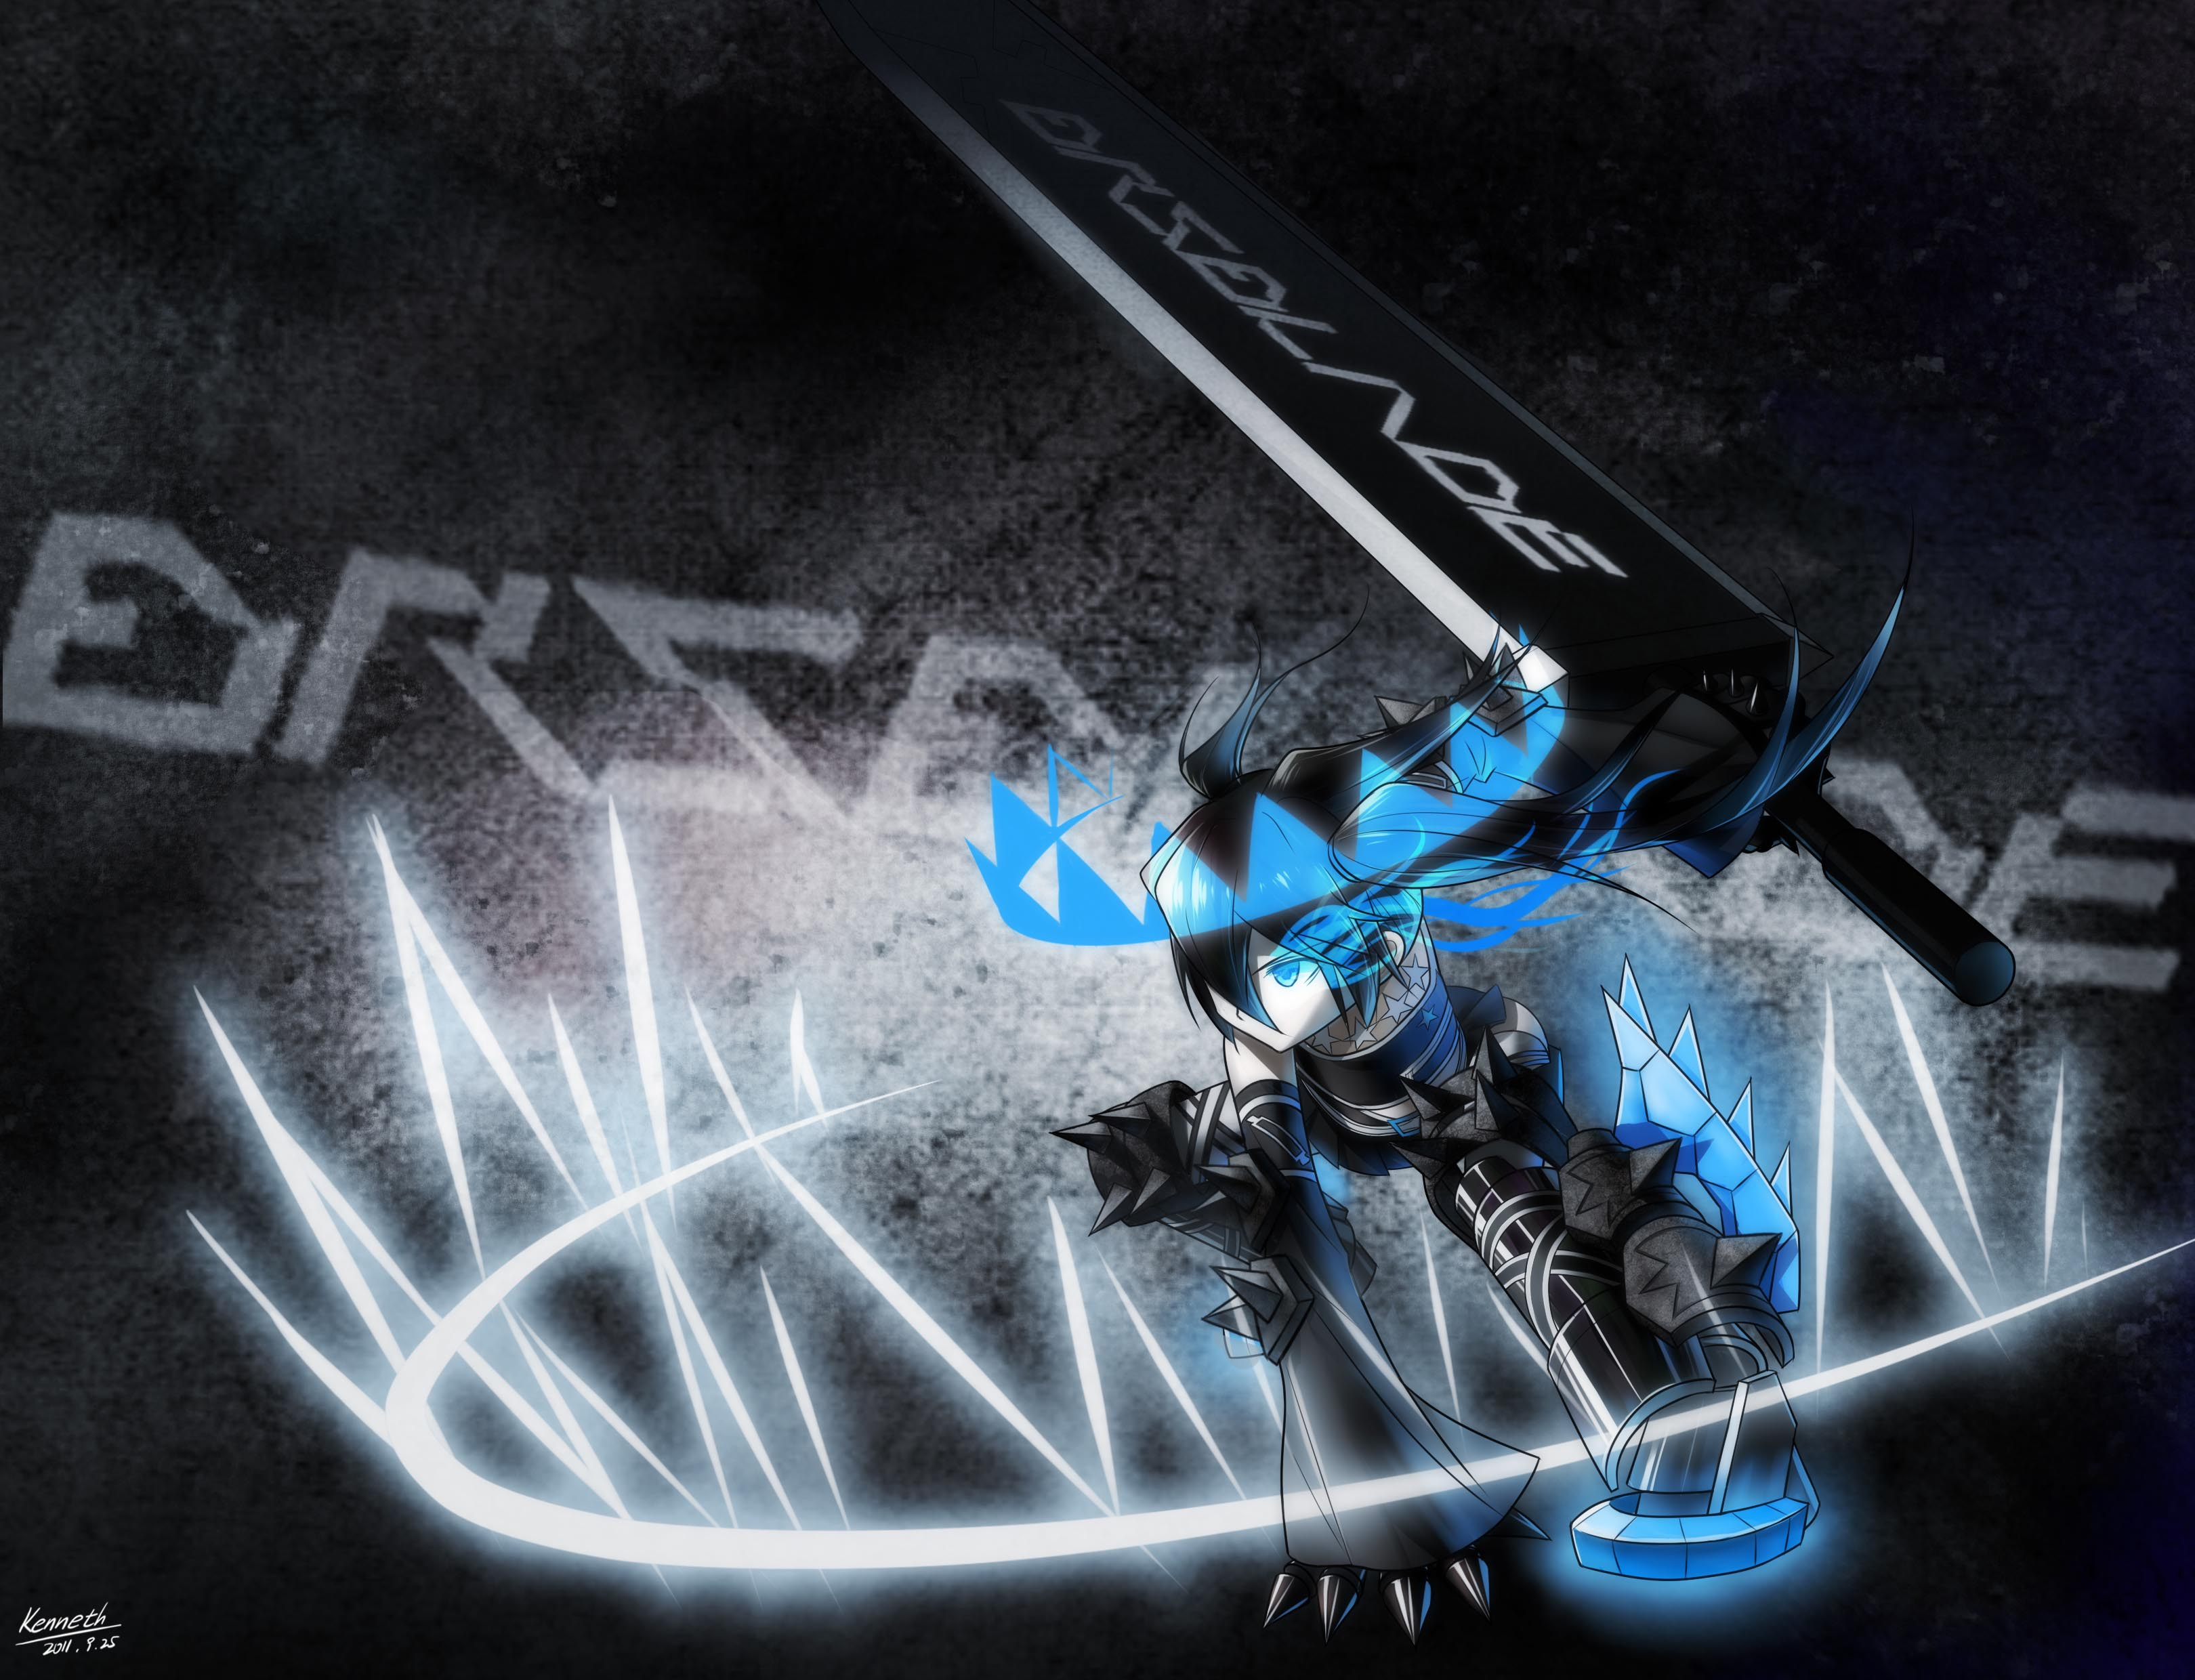 black rock shooter the game english size1491.8KB